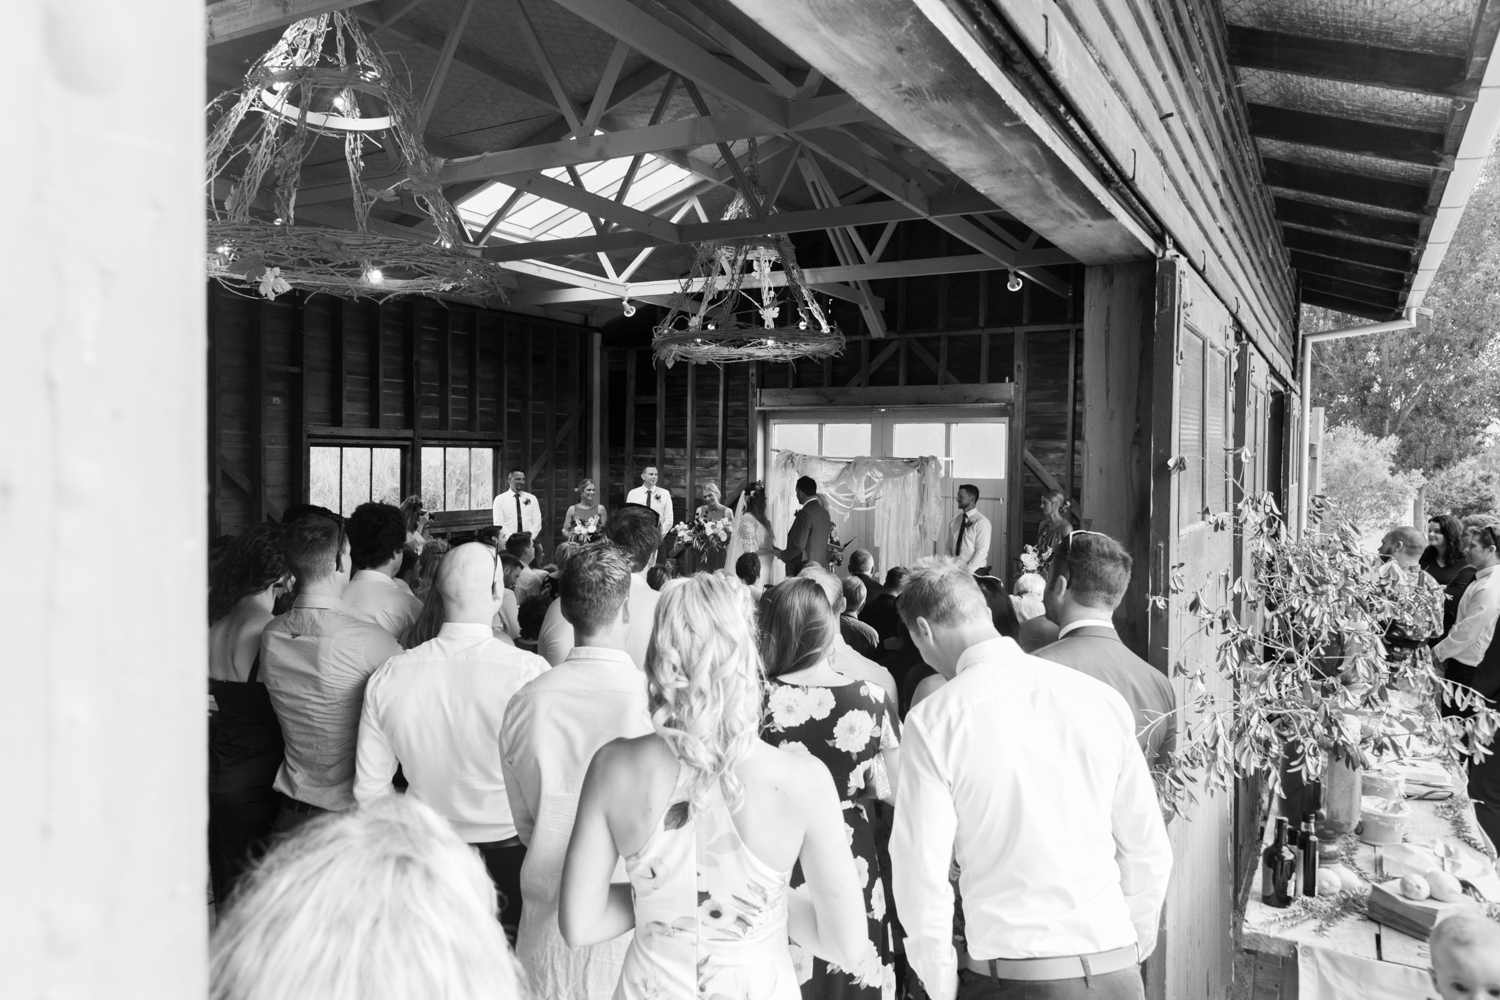 black barn winery hawkes bay wedding with pregnant bride grace loves lace dresshawkes bay black barn wedding pregnant bride in grace loves lace dress